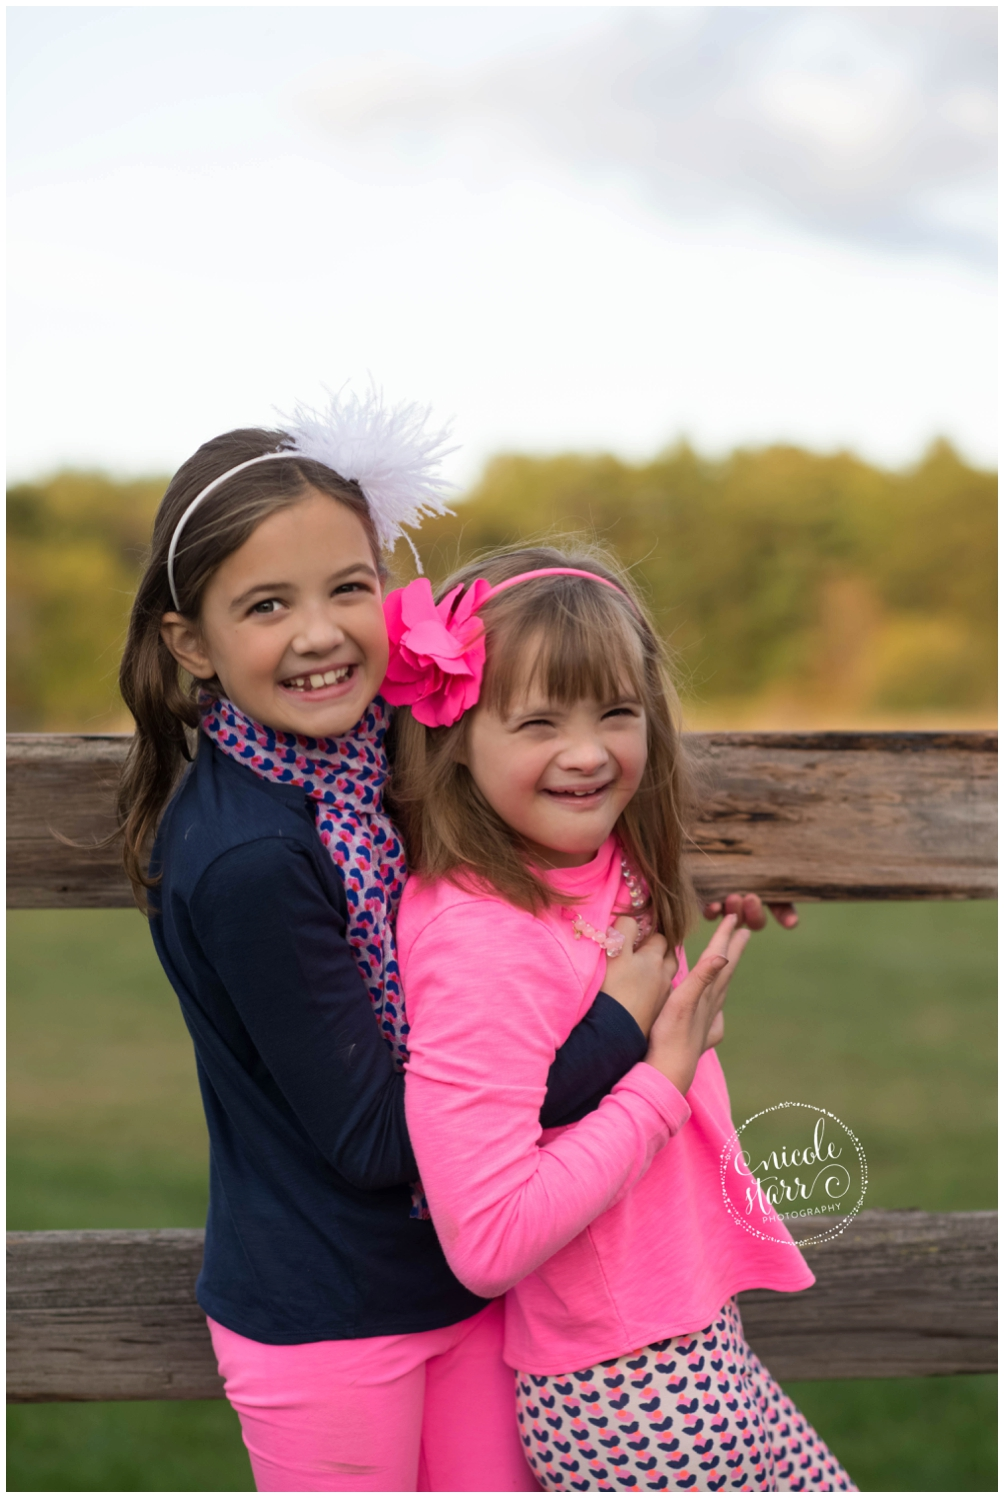 Twin sisters, one with down syndrome.